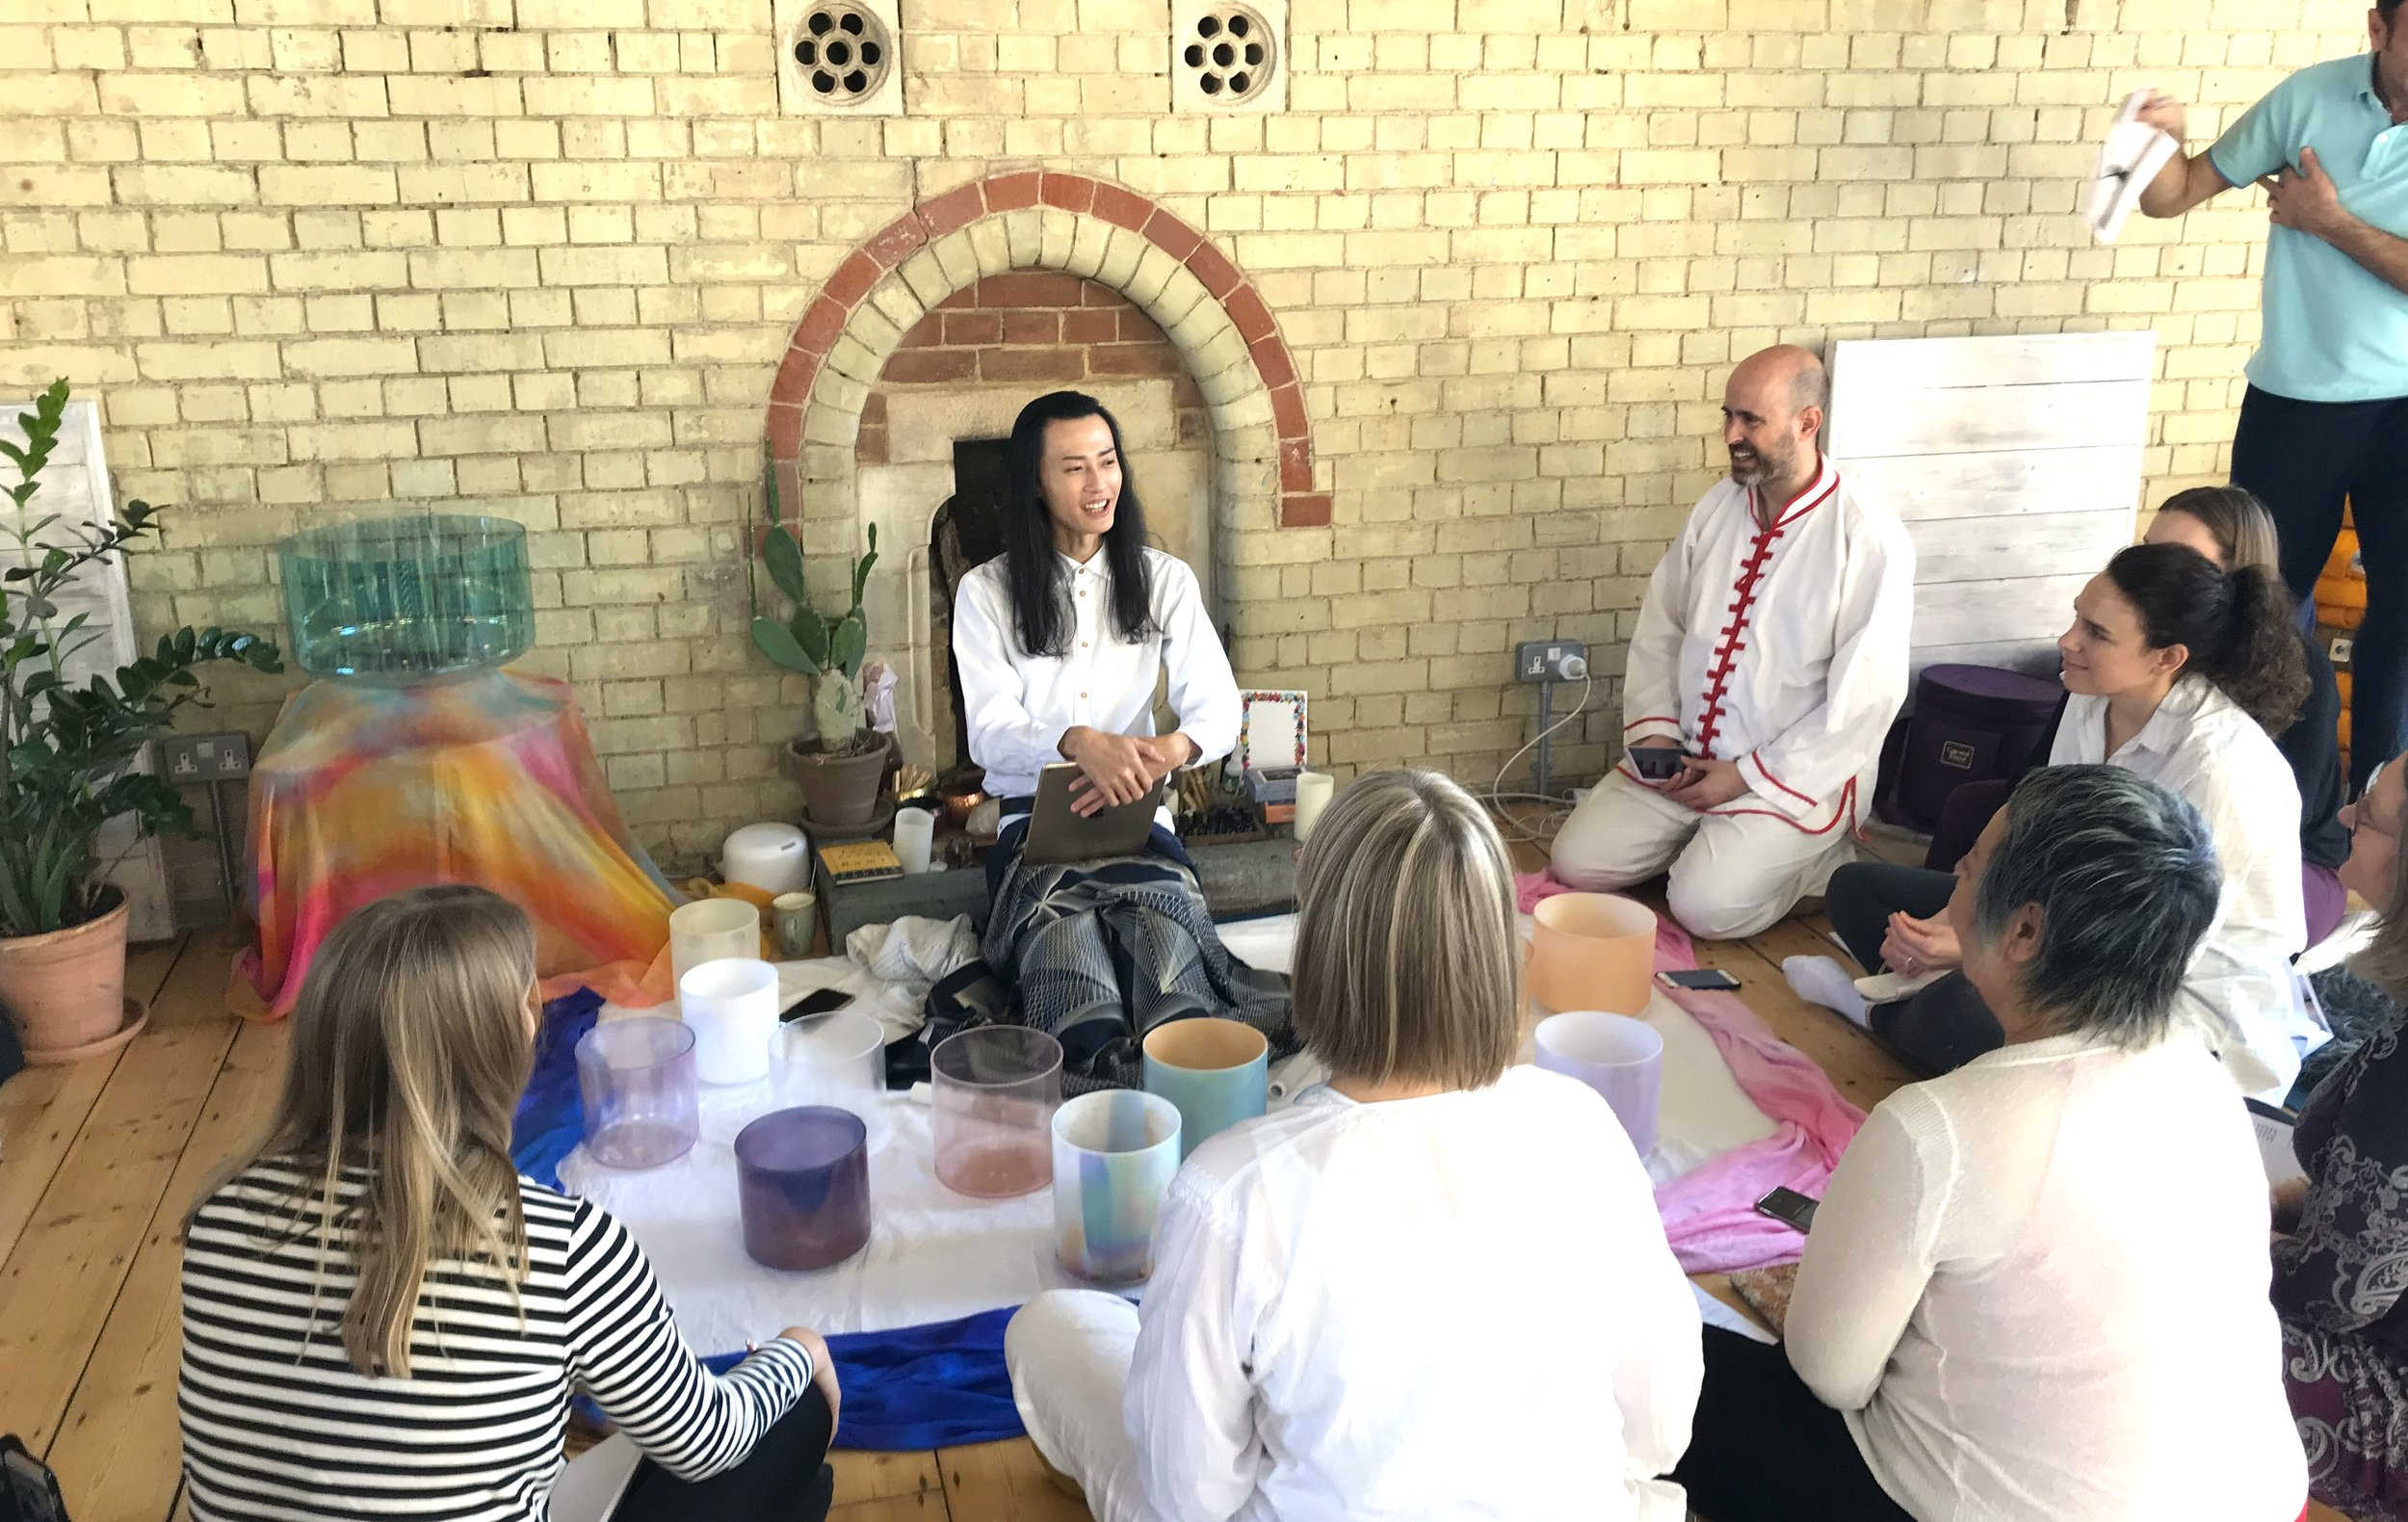 courses - Read about our upcoming courses on sound medicine and Quantum healing